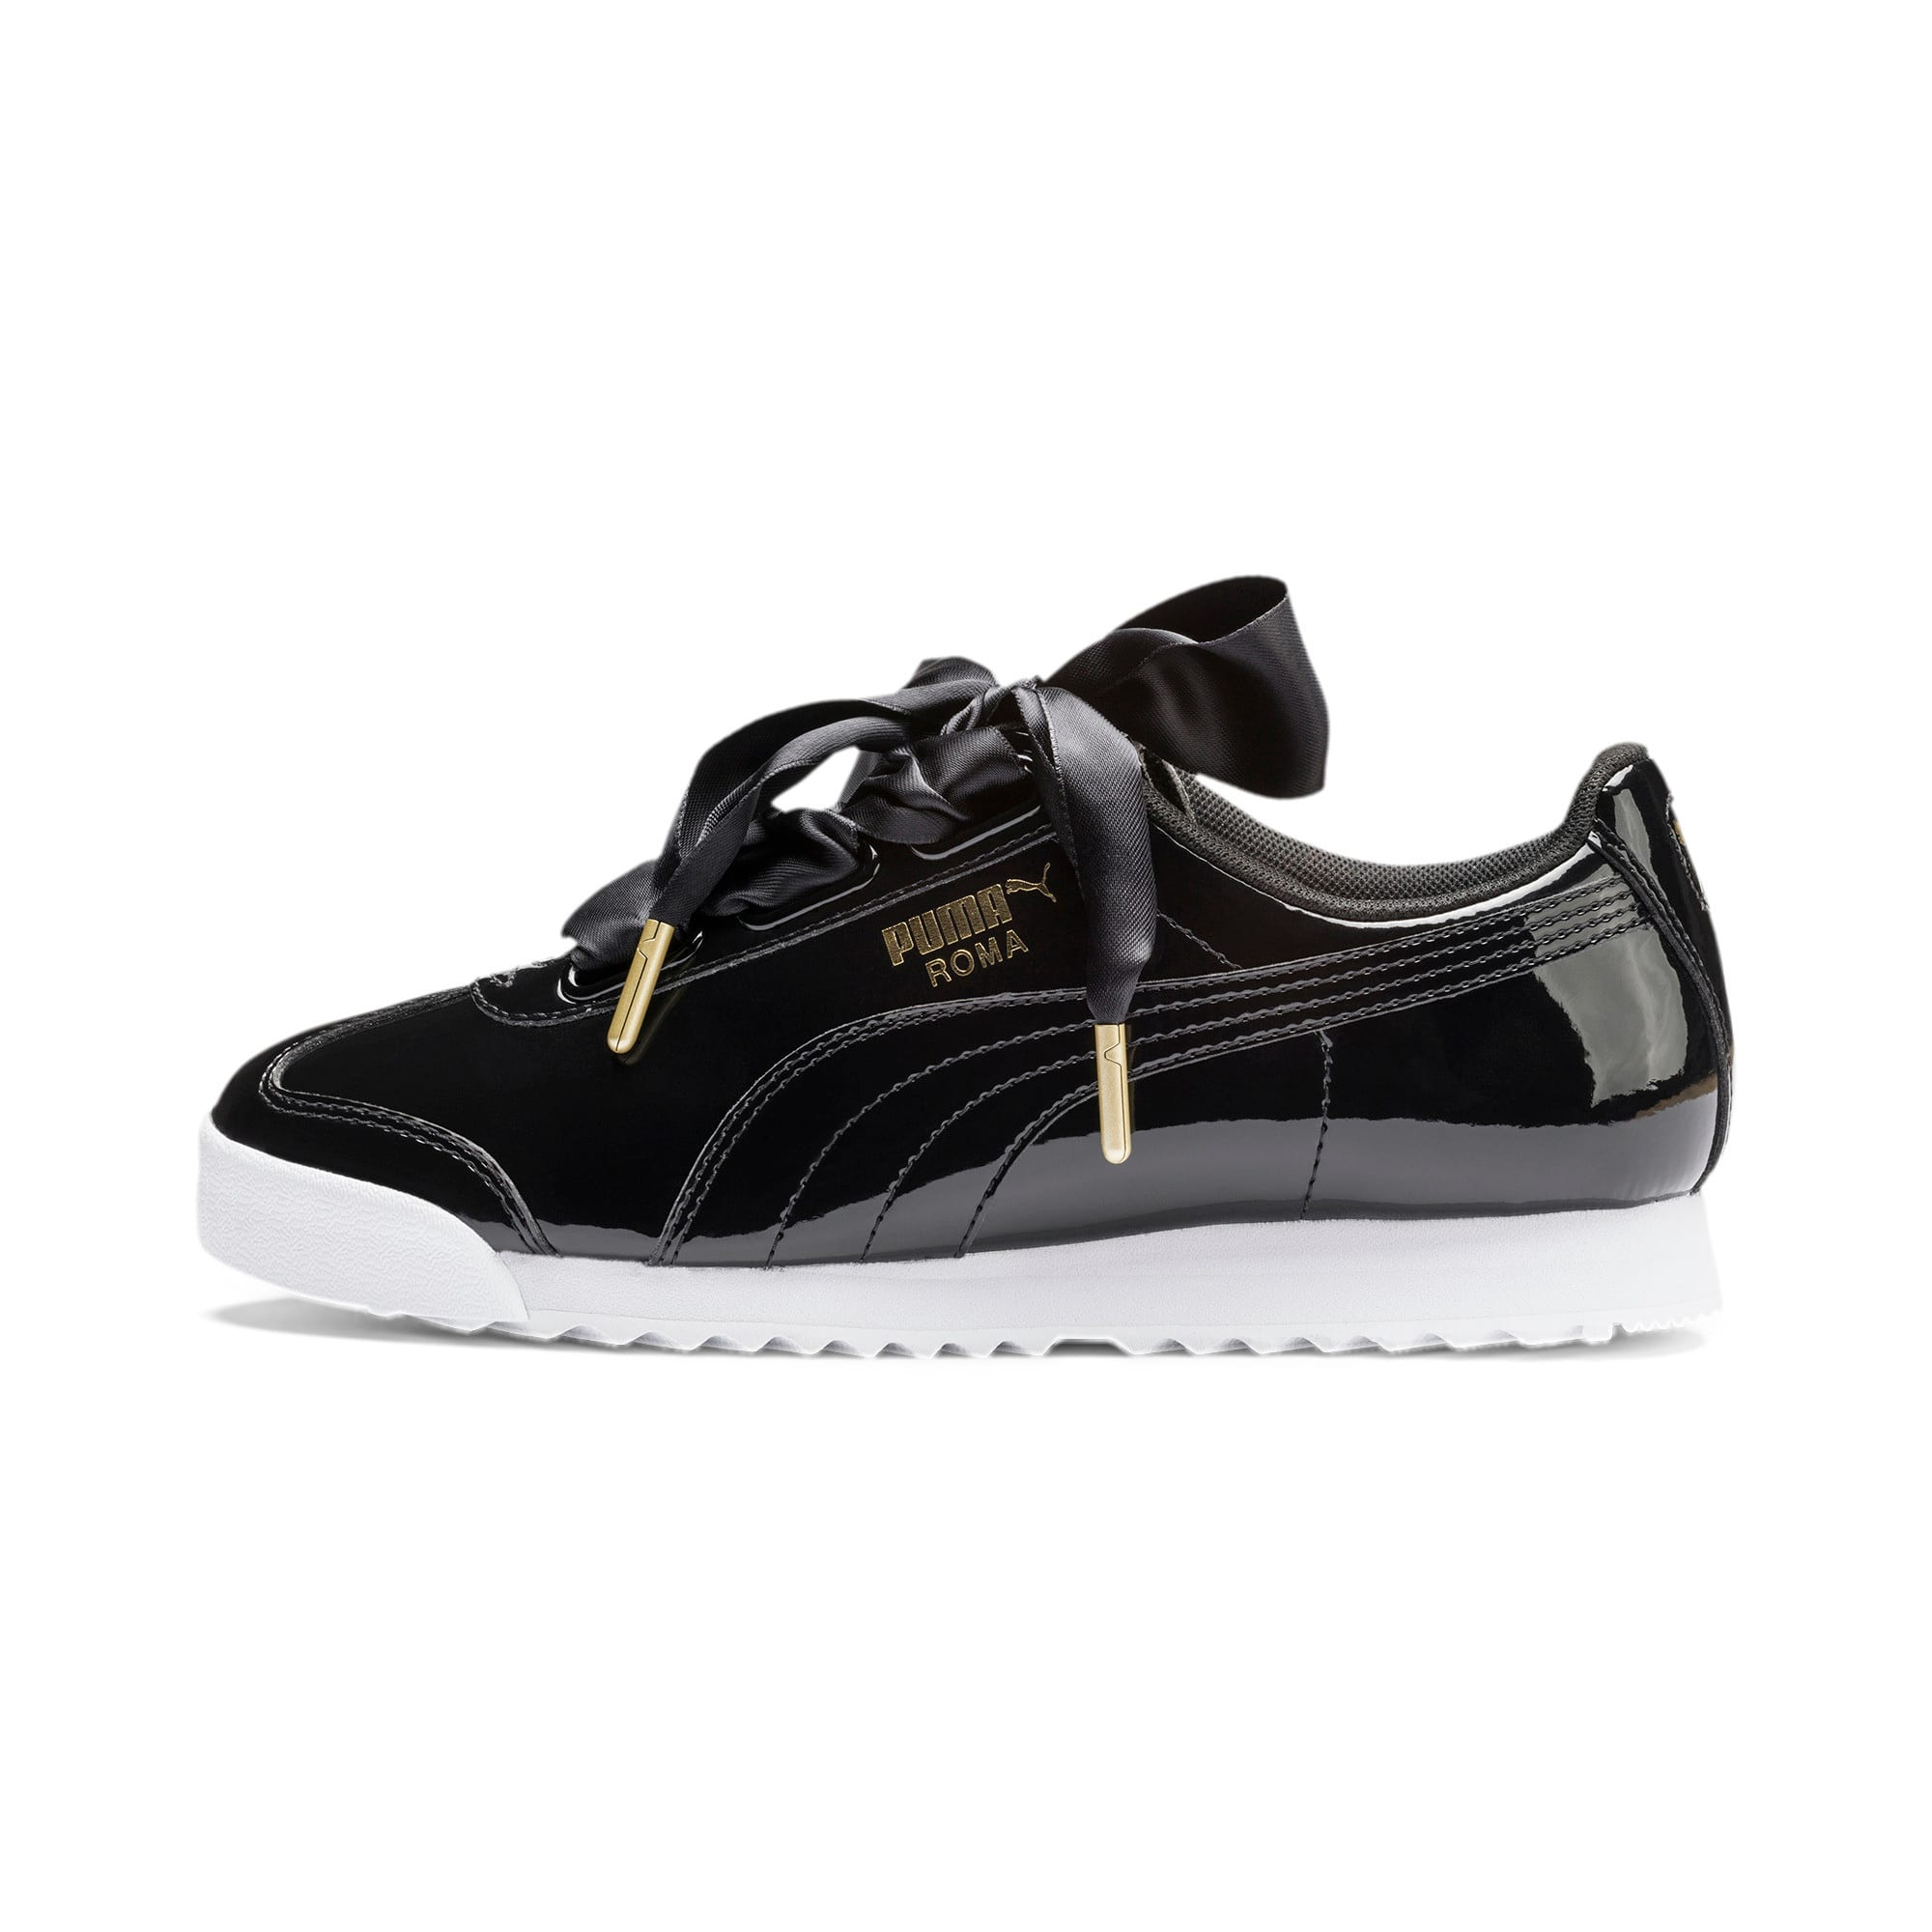 Thumbnail 1 of Roma Heart Patent Women's Sneakers, Puma Black-Puma Team Gold, medium